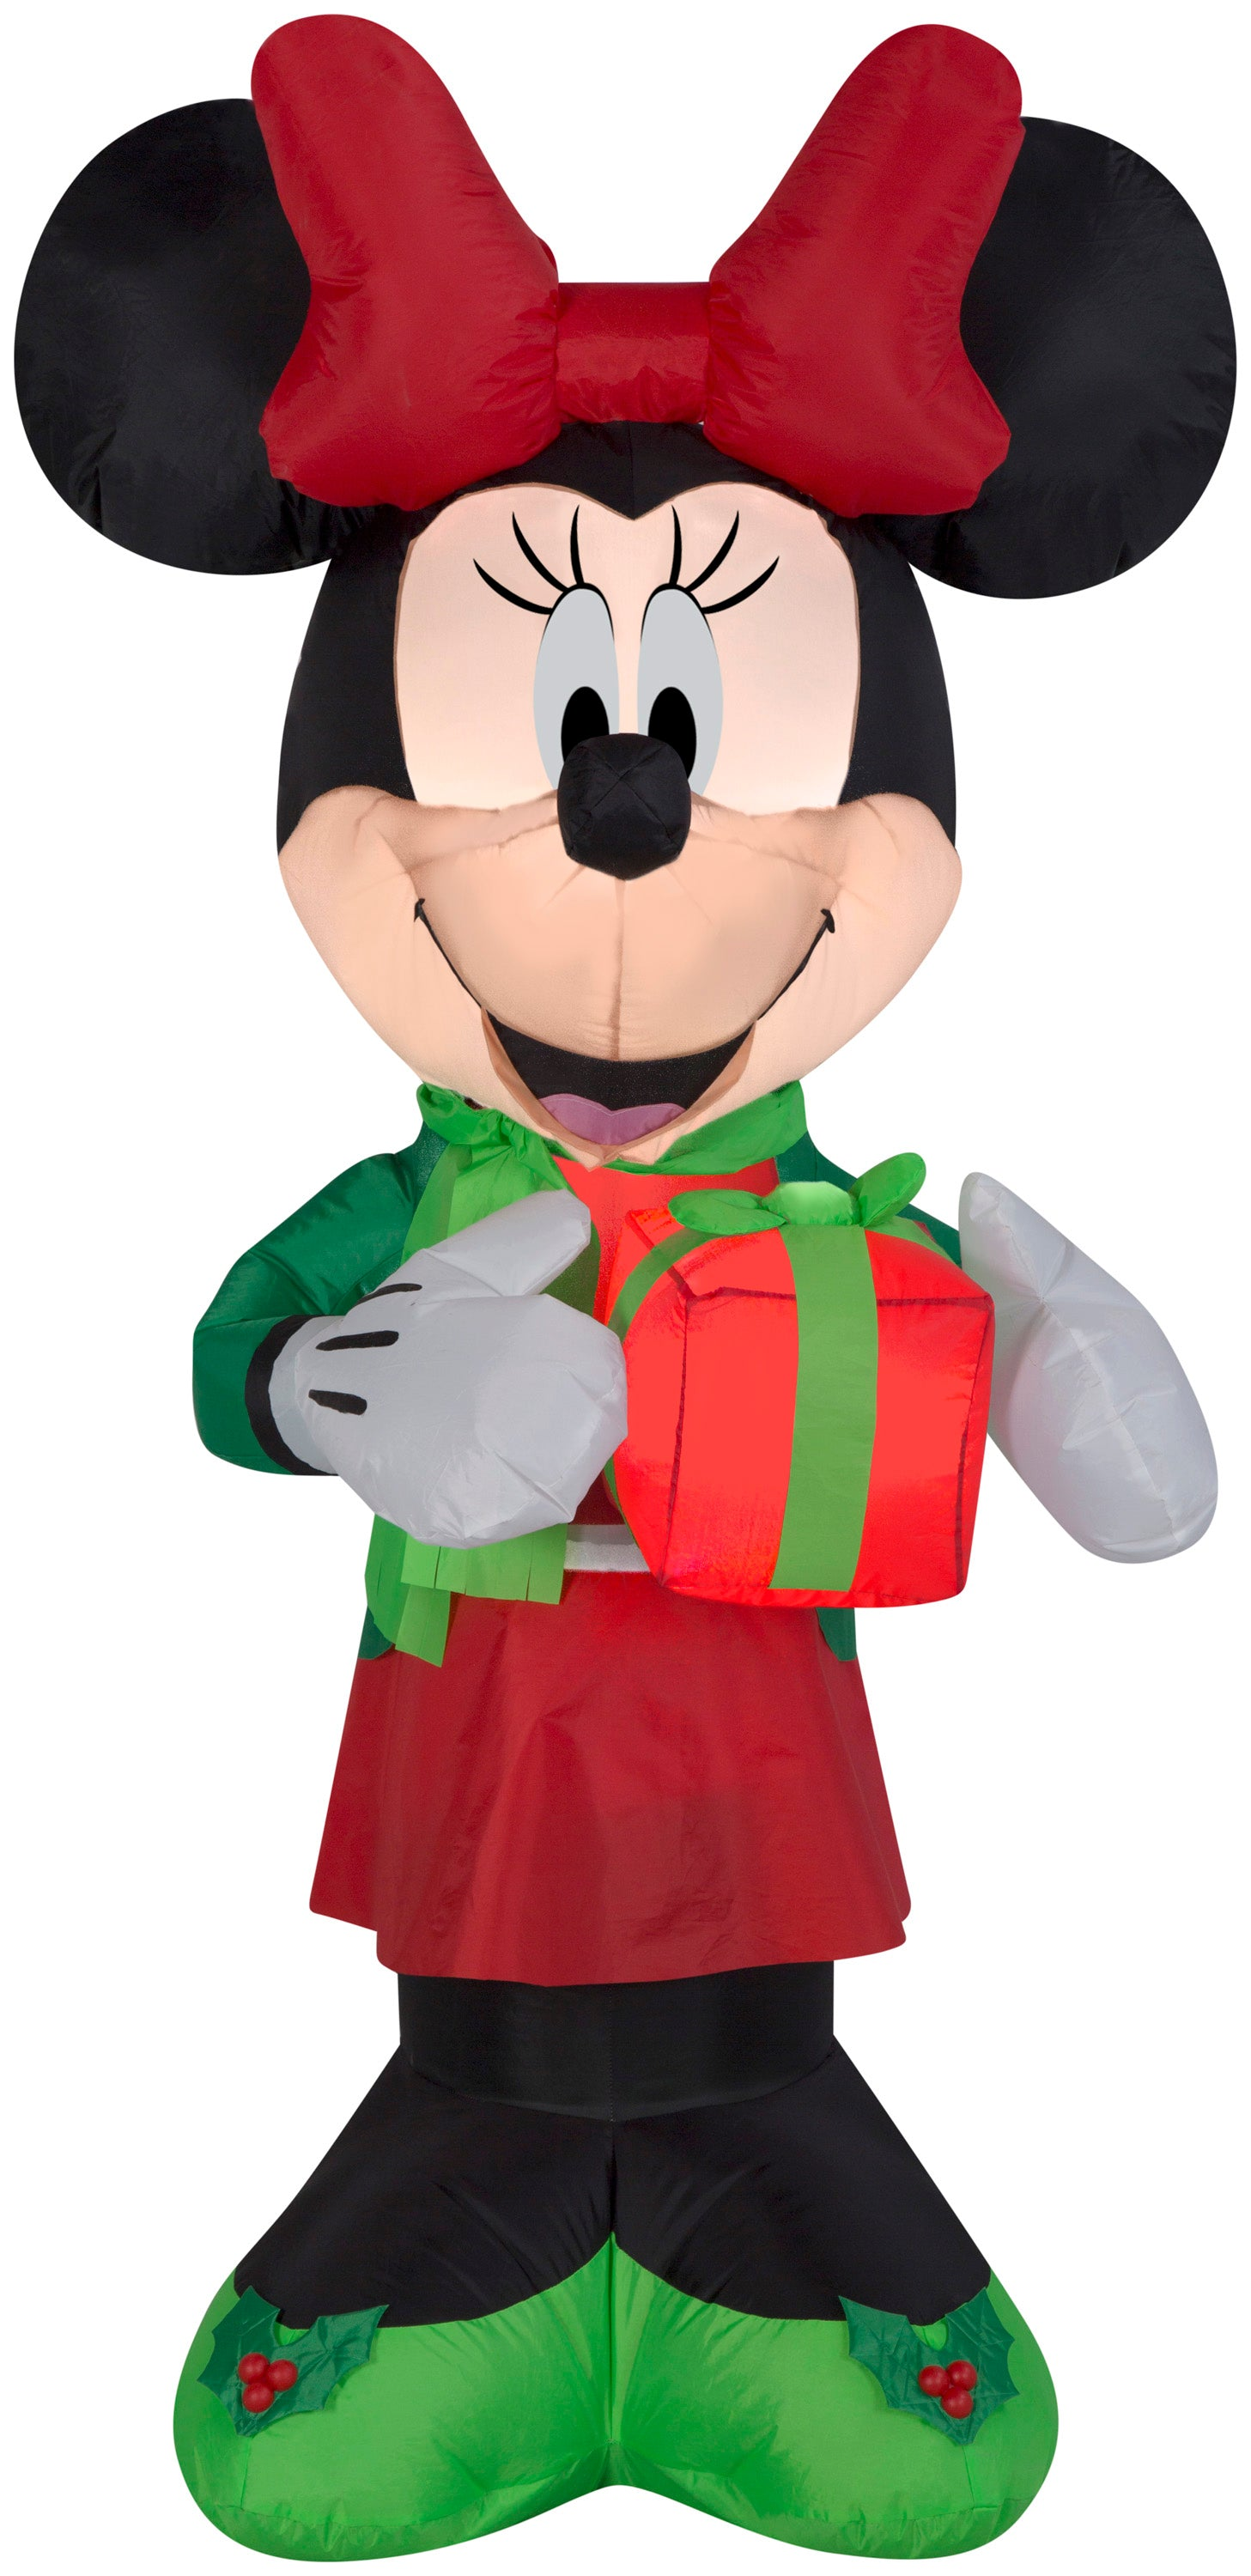 5' Airblown-Minnie w/Present Disney Christmas Inflatable